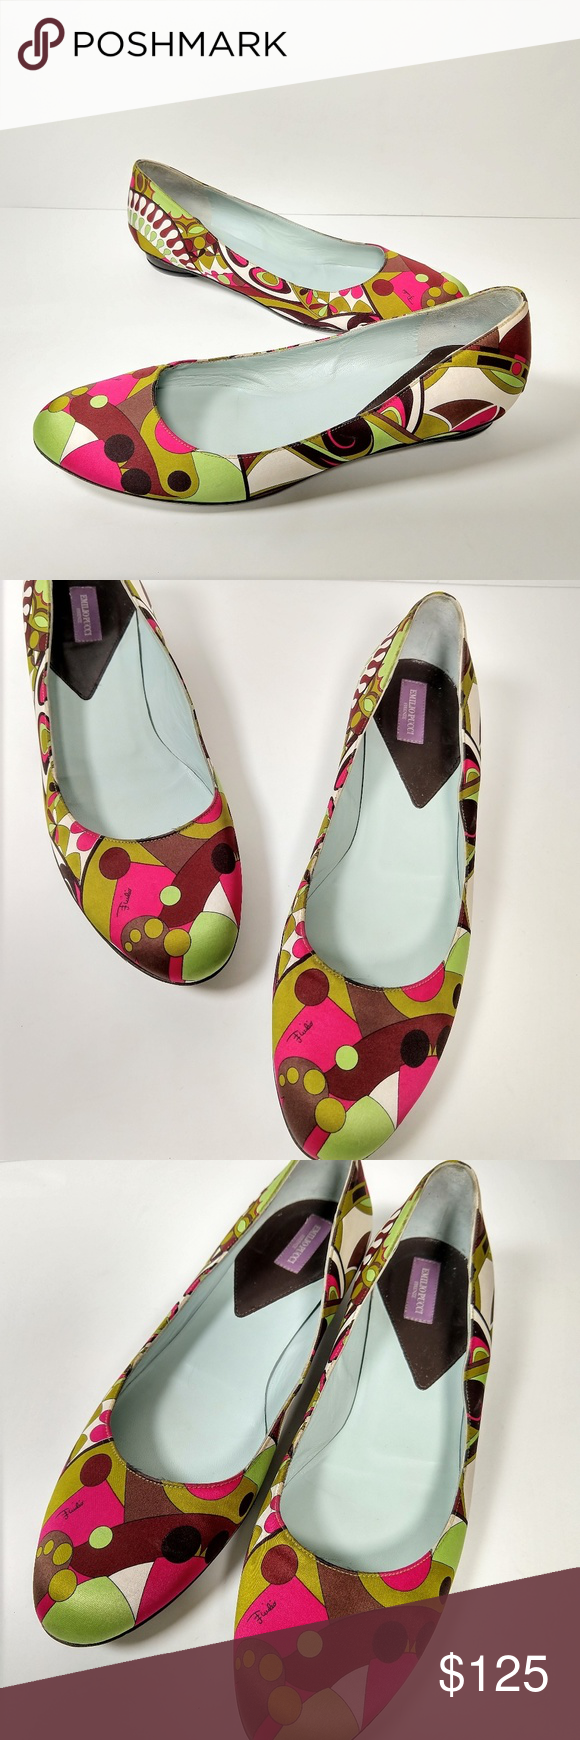 Pin By Amy Galen On My Posh Picks Emilio Pucci Pucci Loafer Flats